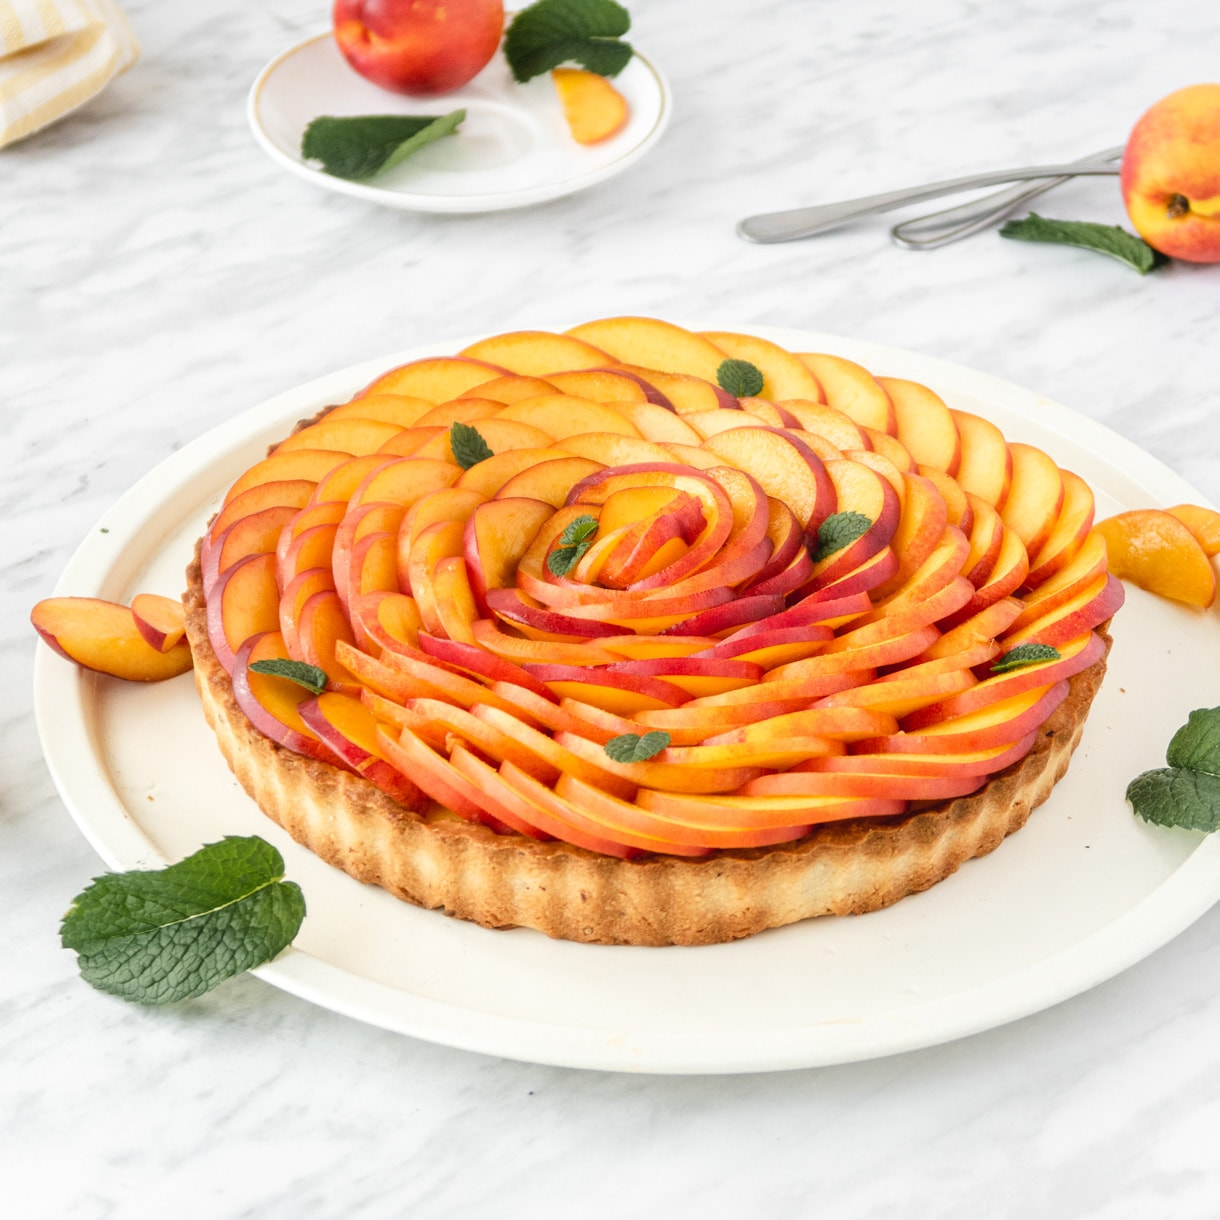 3/4 view of a nectarine tart on a white plate with mind leaves garnishes